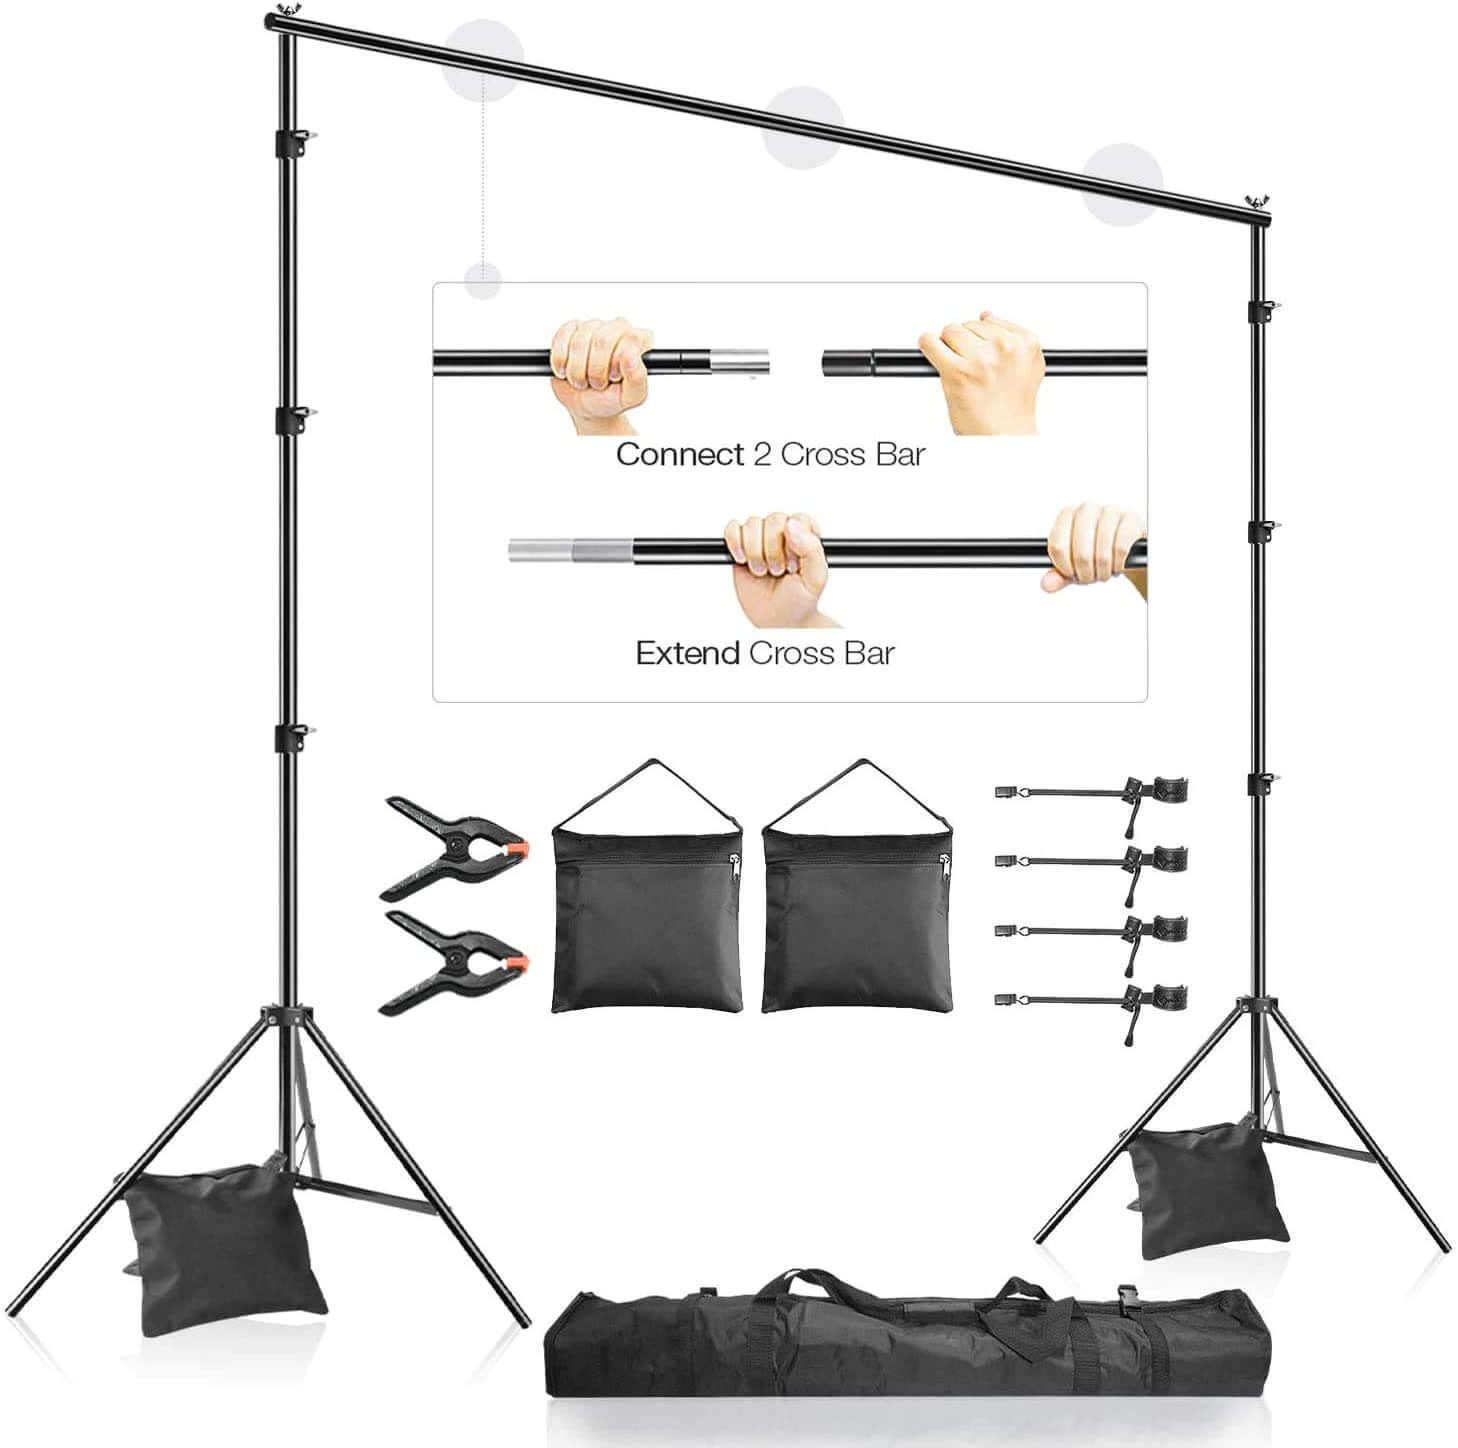 LimoStudio 10x7.3 ft. Backdrop Stand